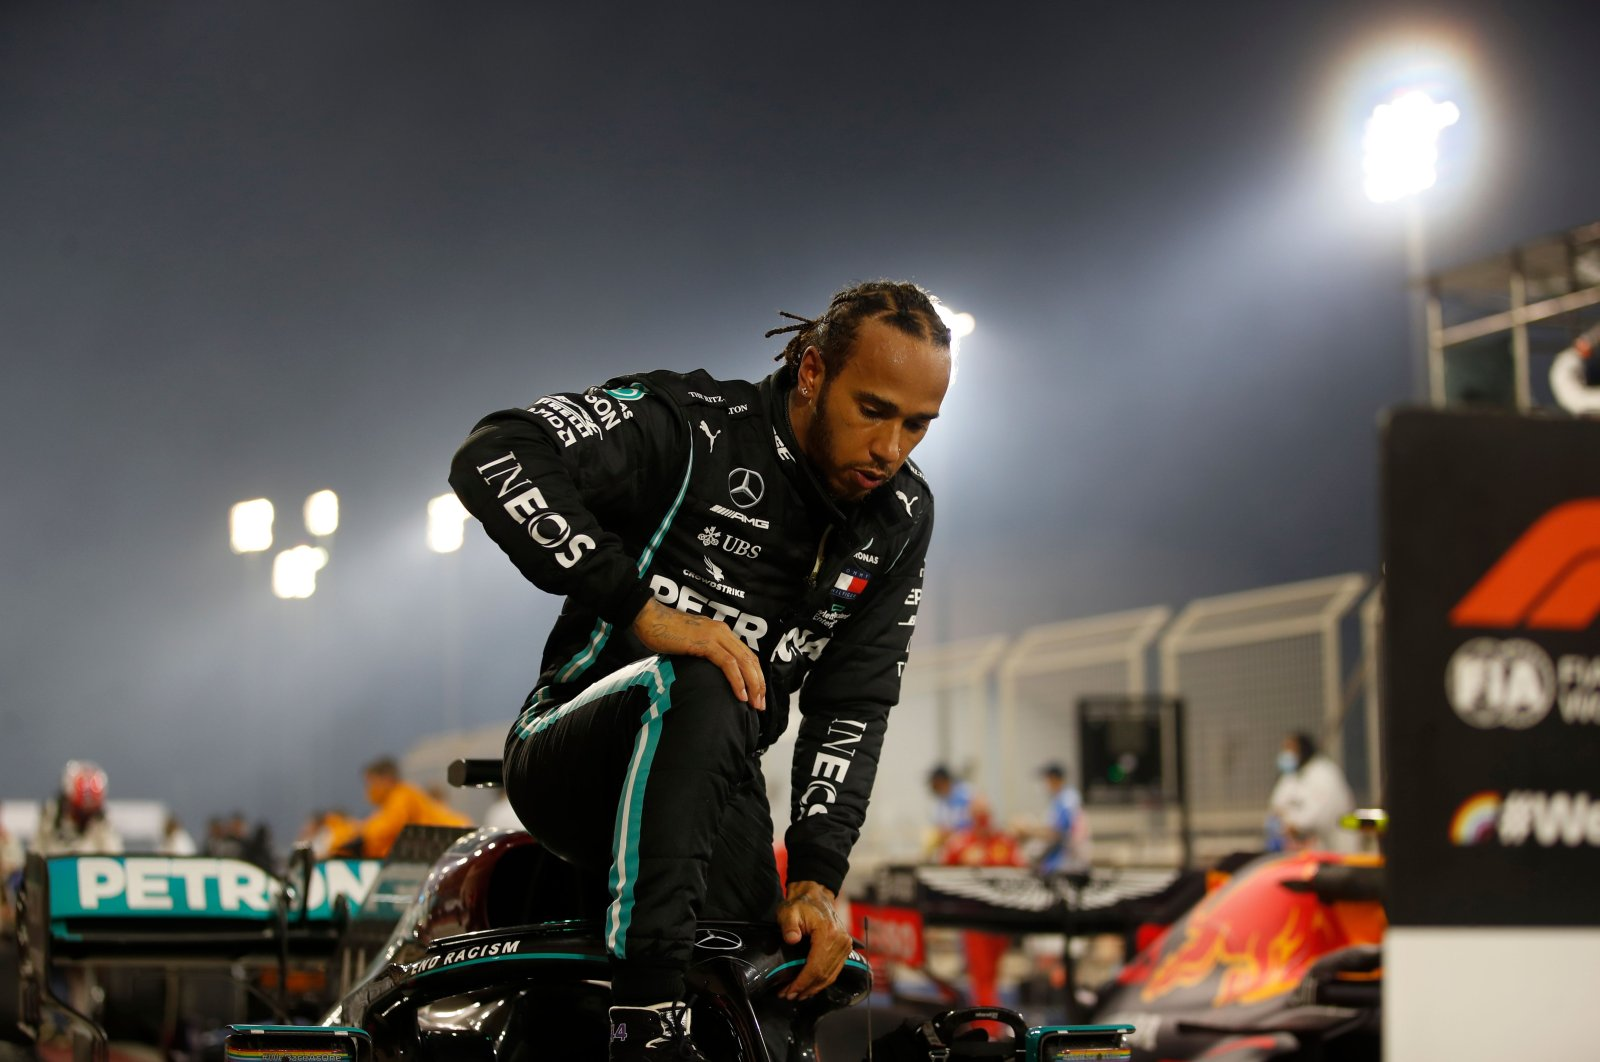 Lewis Hamilton steps out of his car after winning the Bahrain Formula One Grand Prix, Sakhir, Bahrain, Nov. 29, 2020. (AFP Photo)